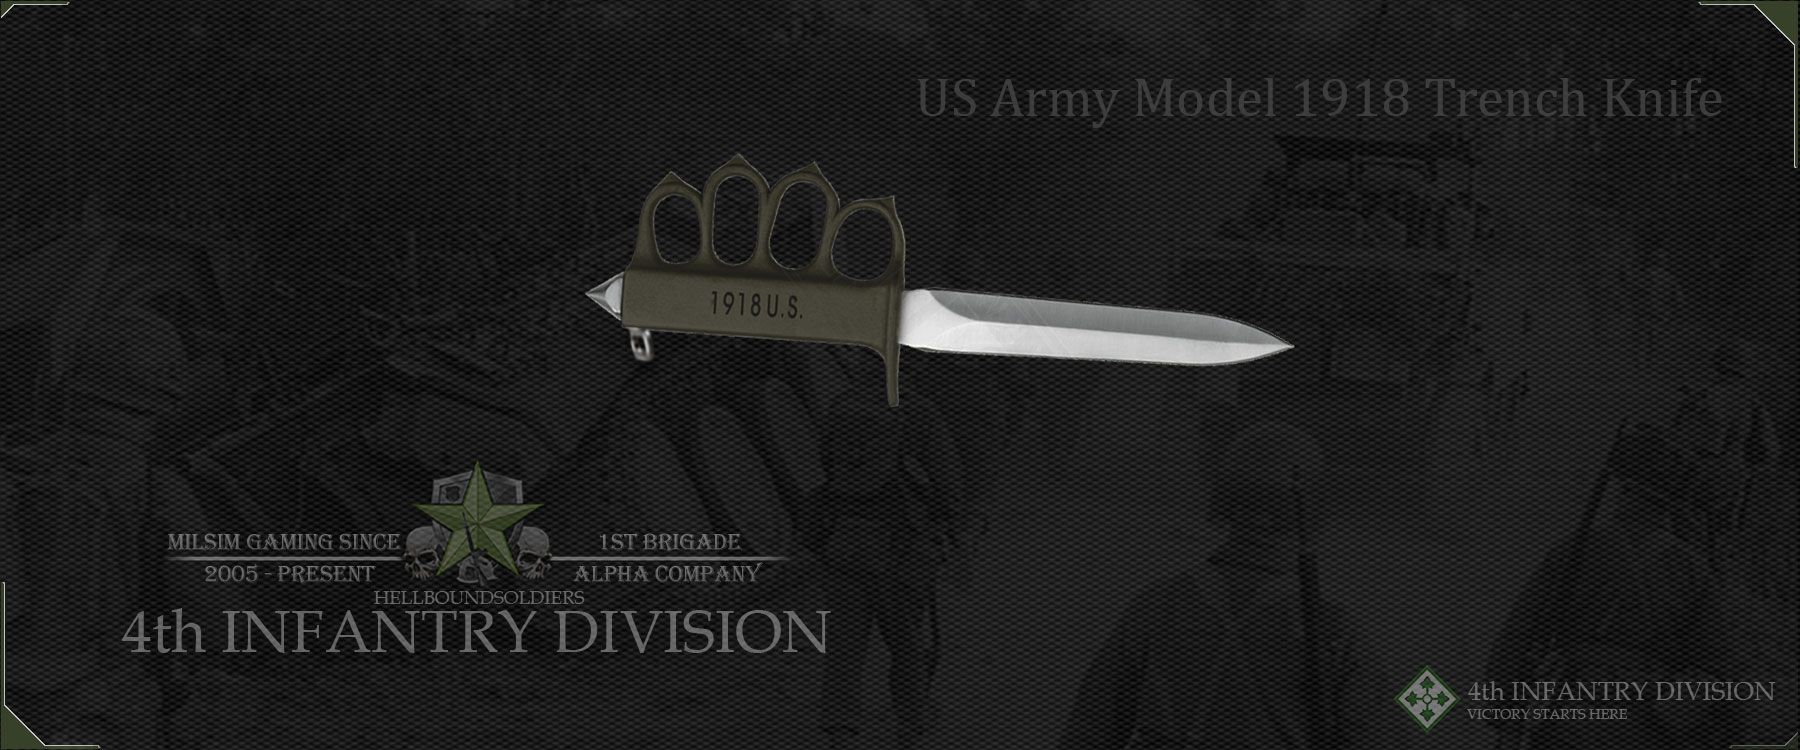 US Army Model 1918 Trench Knife